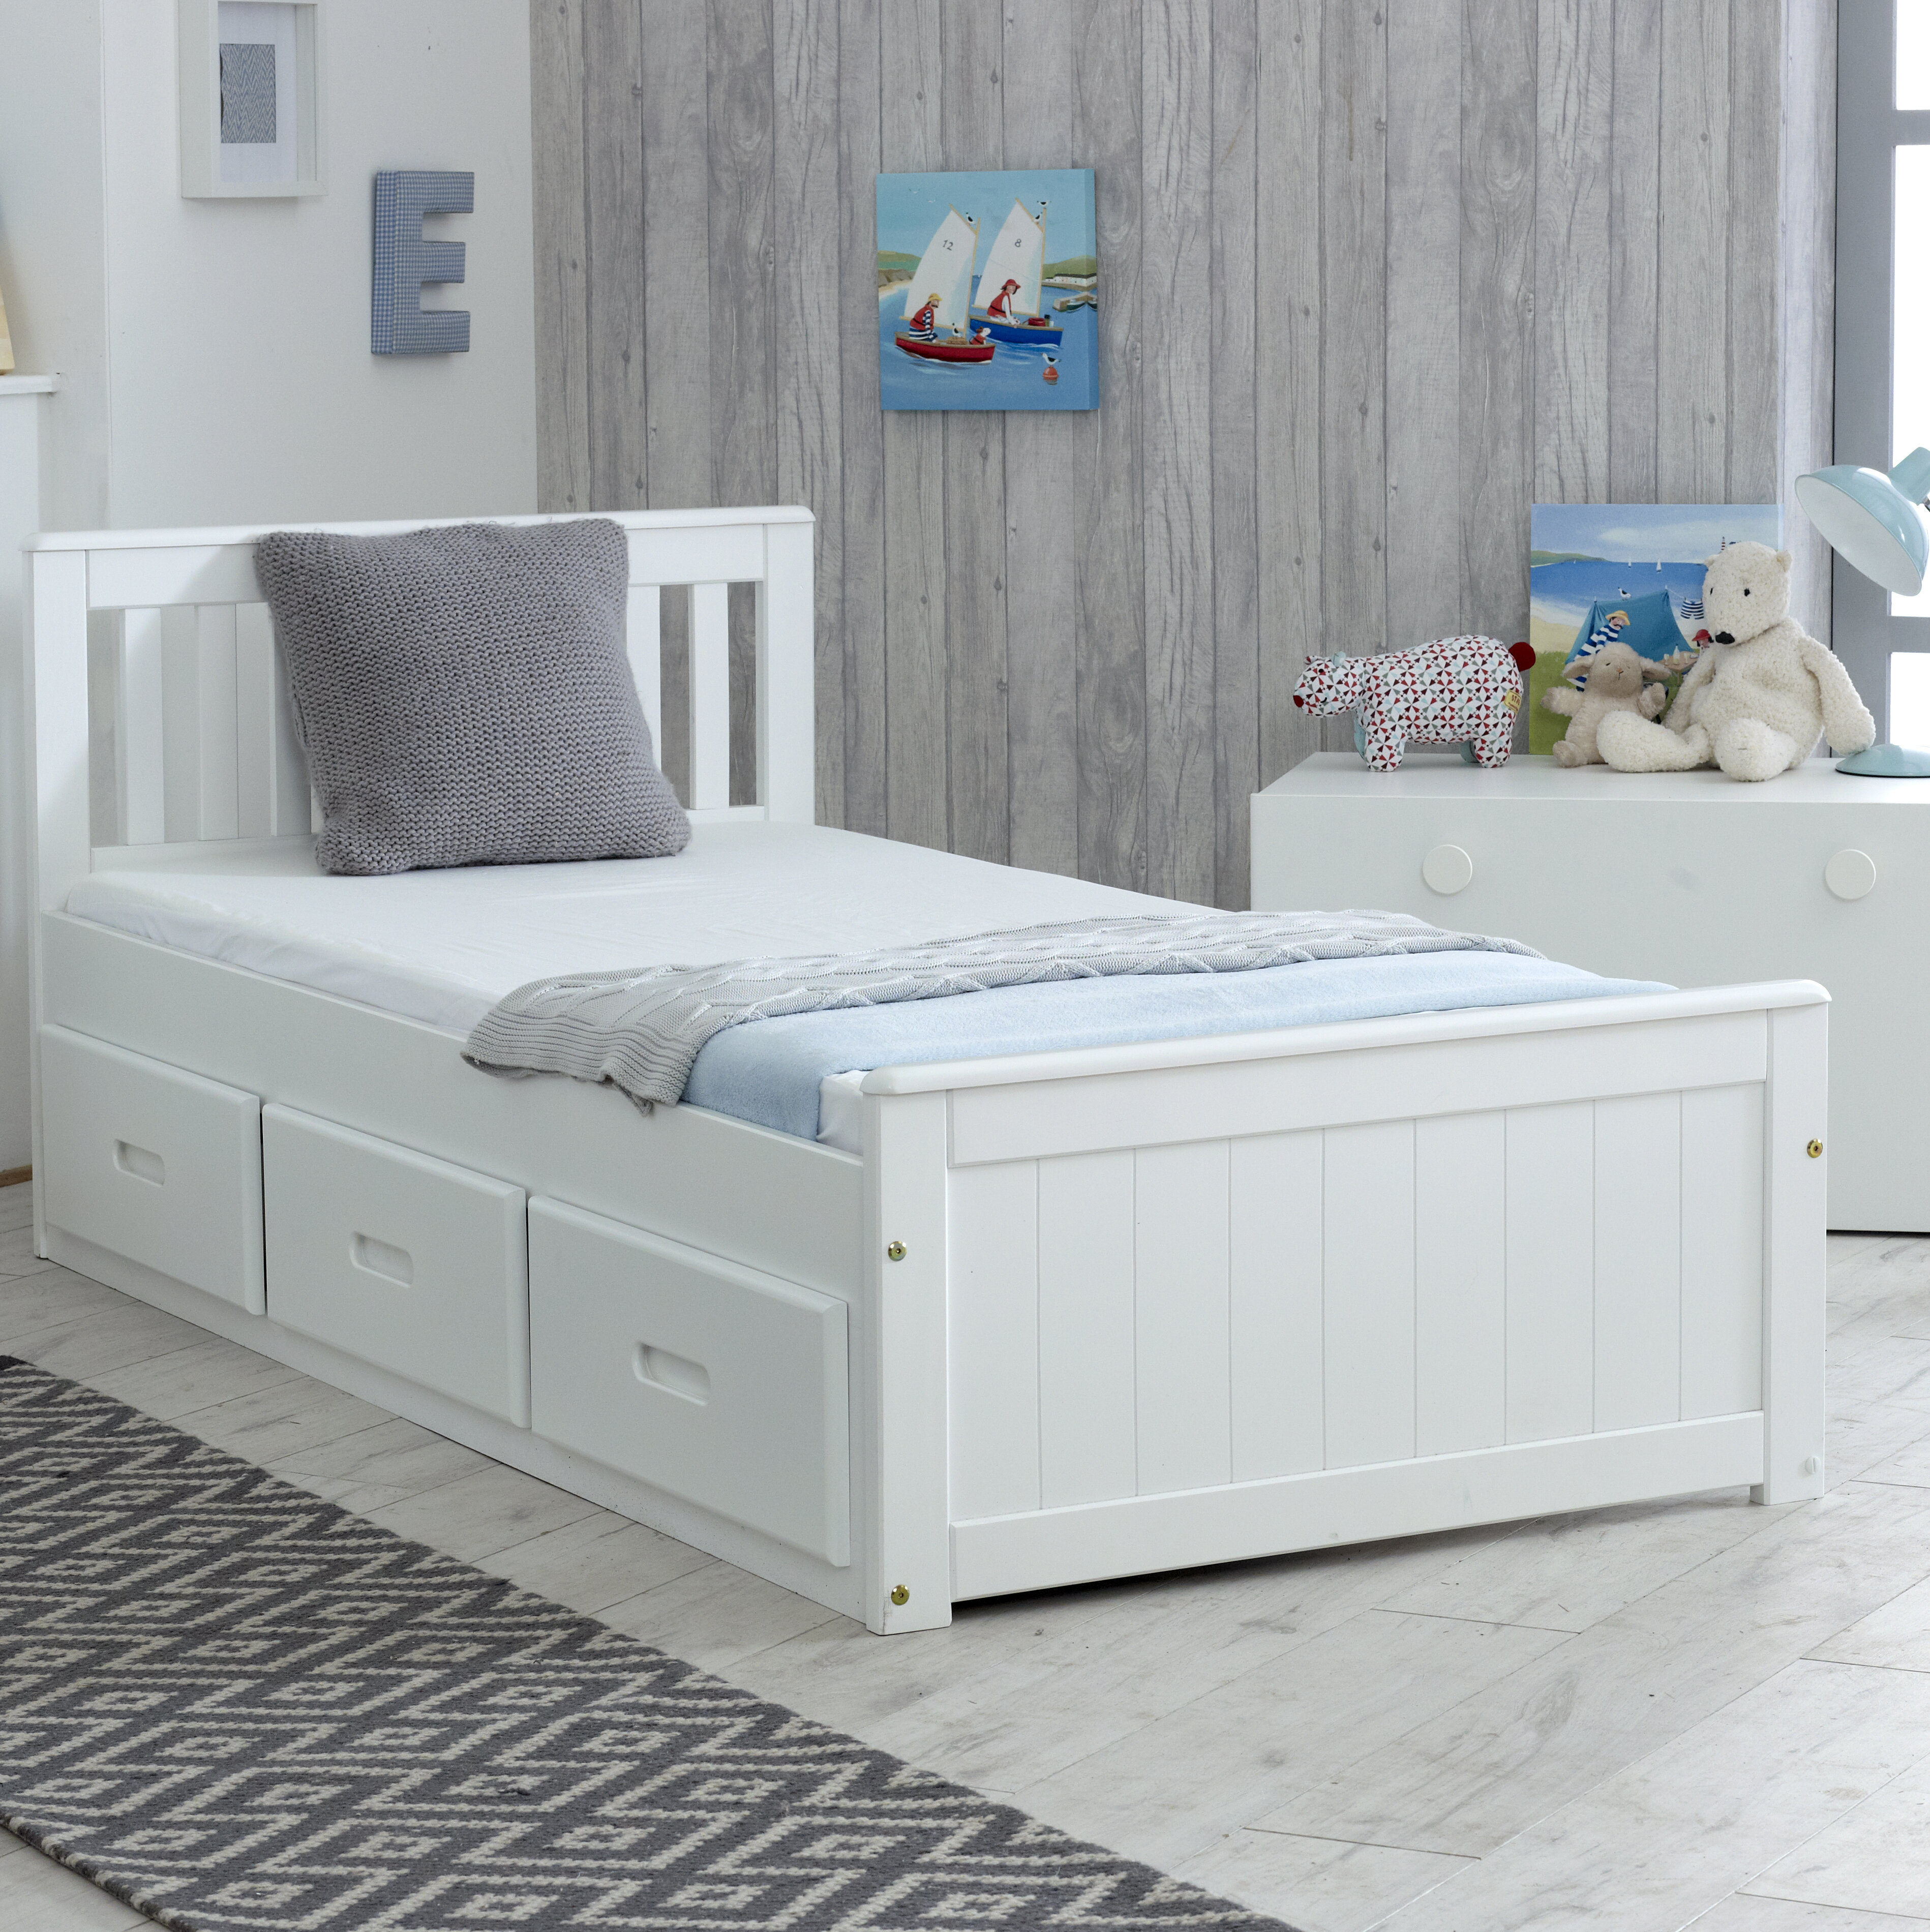 Just Kids Single Cabin Bed With Drawers Reviews